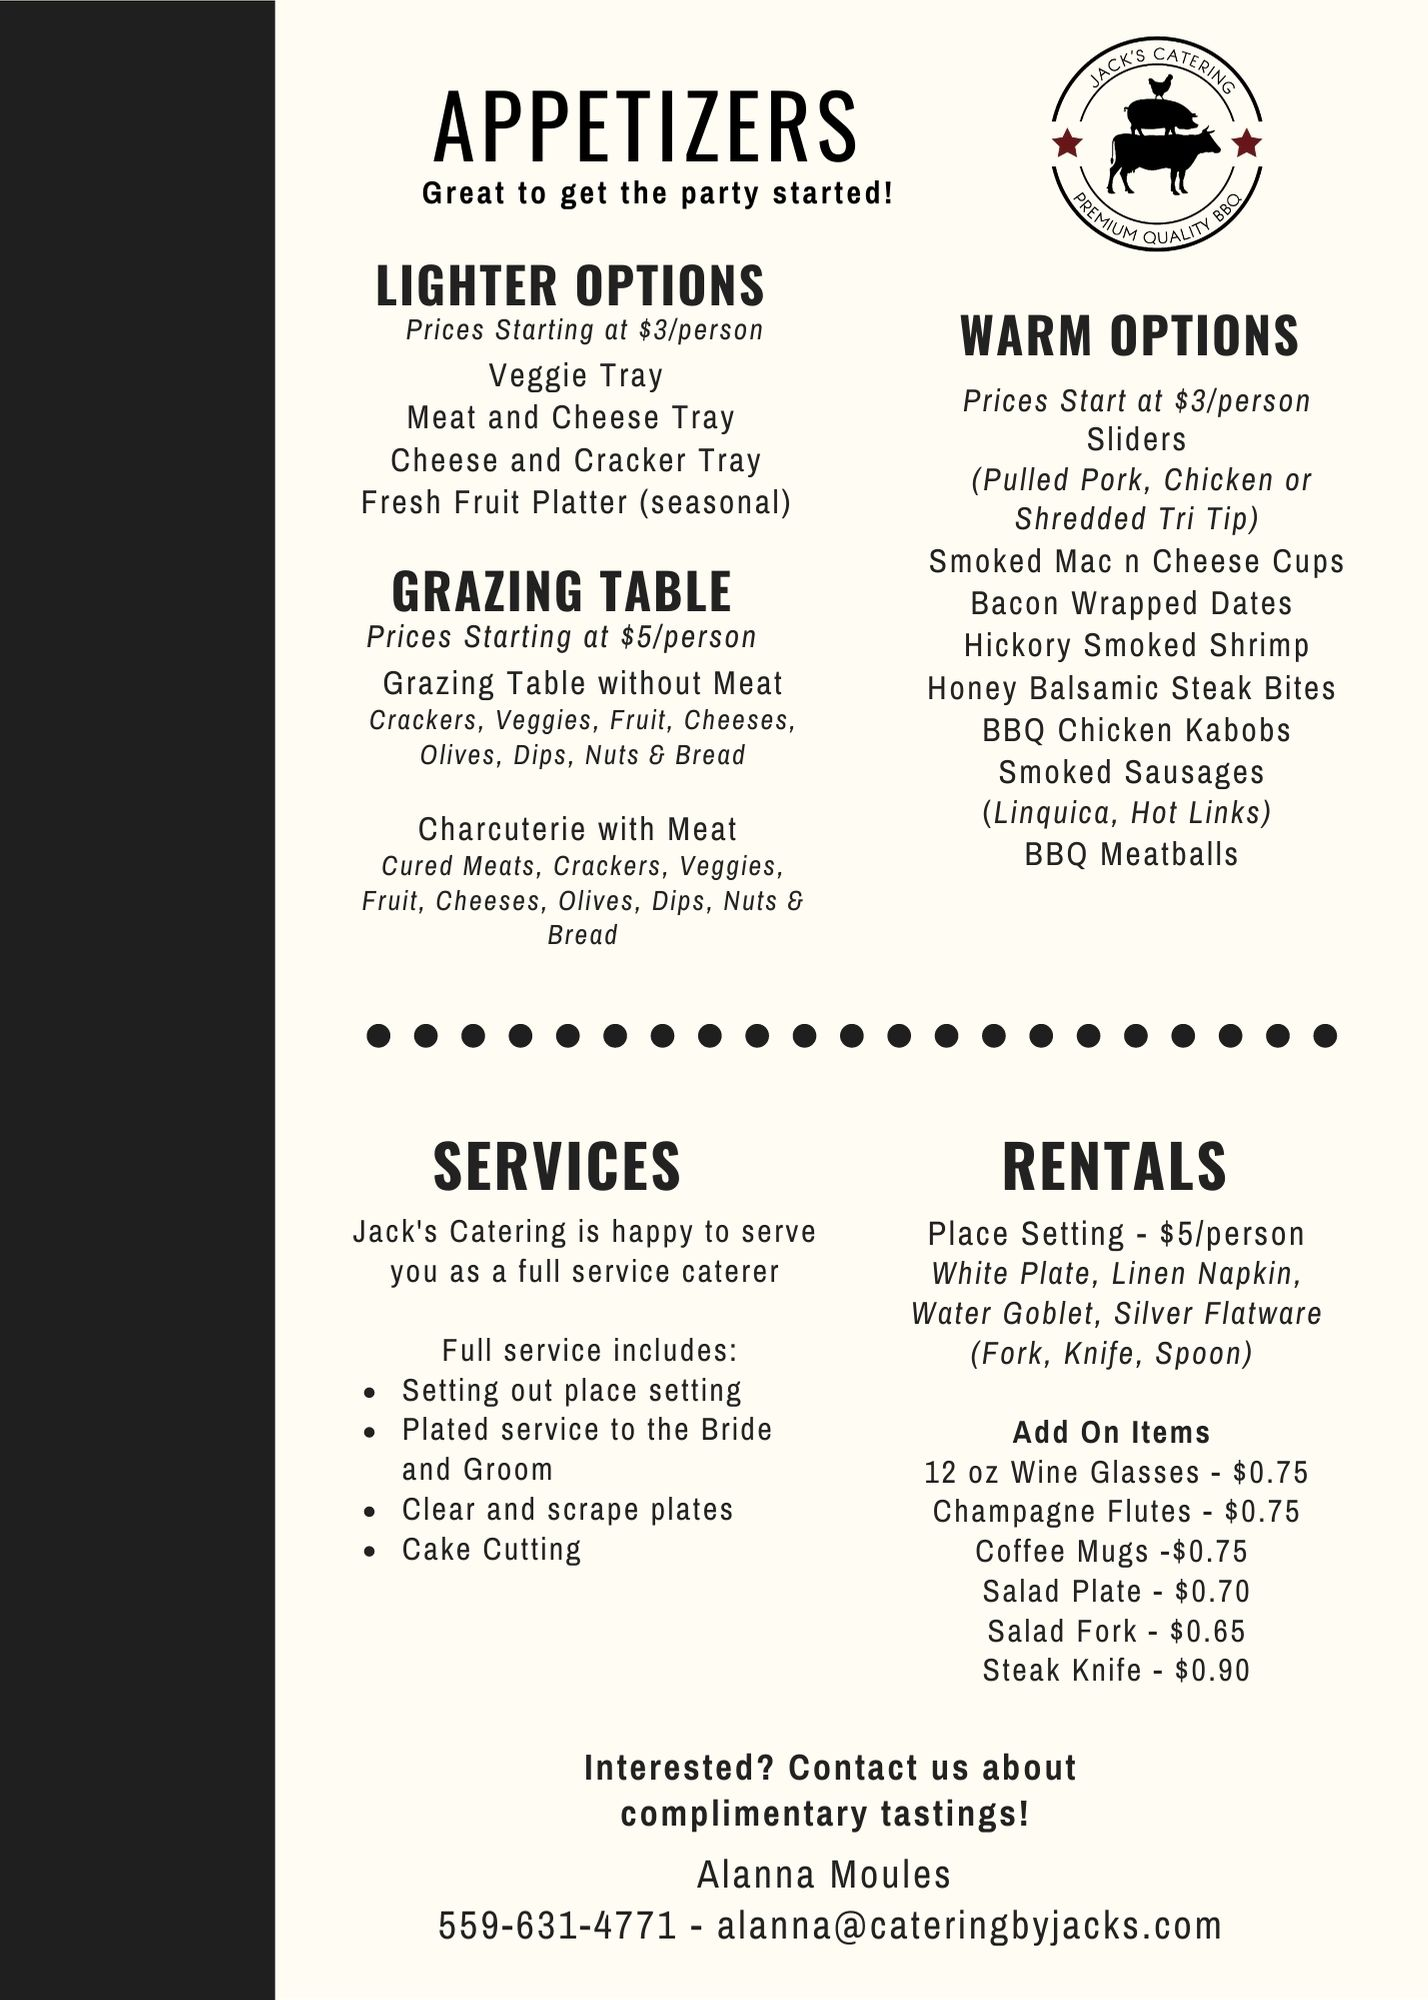 Wedding_Large Events Catering Menu 2022.